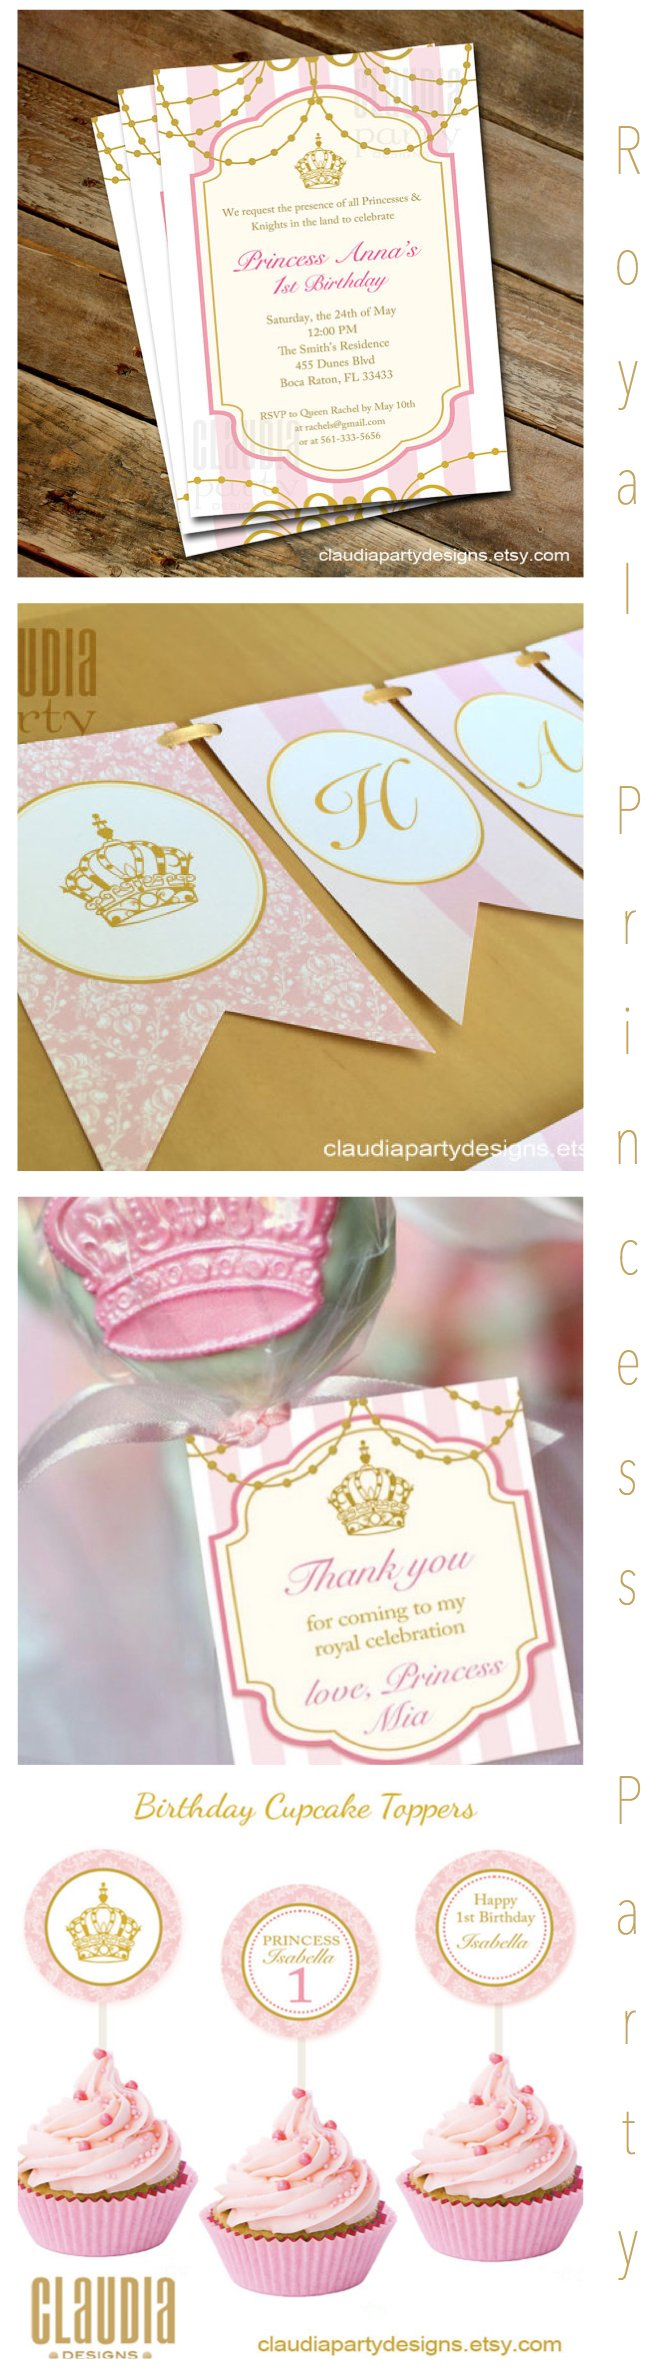 Royal Princess Party Printables